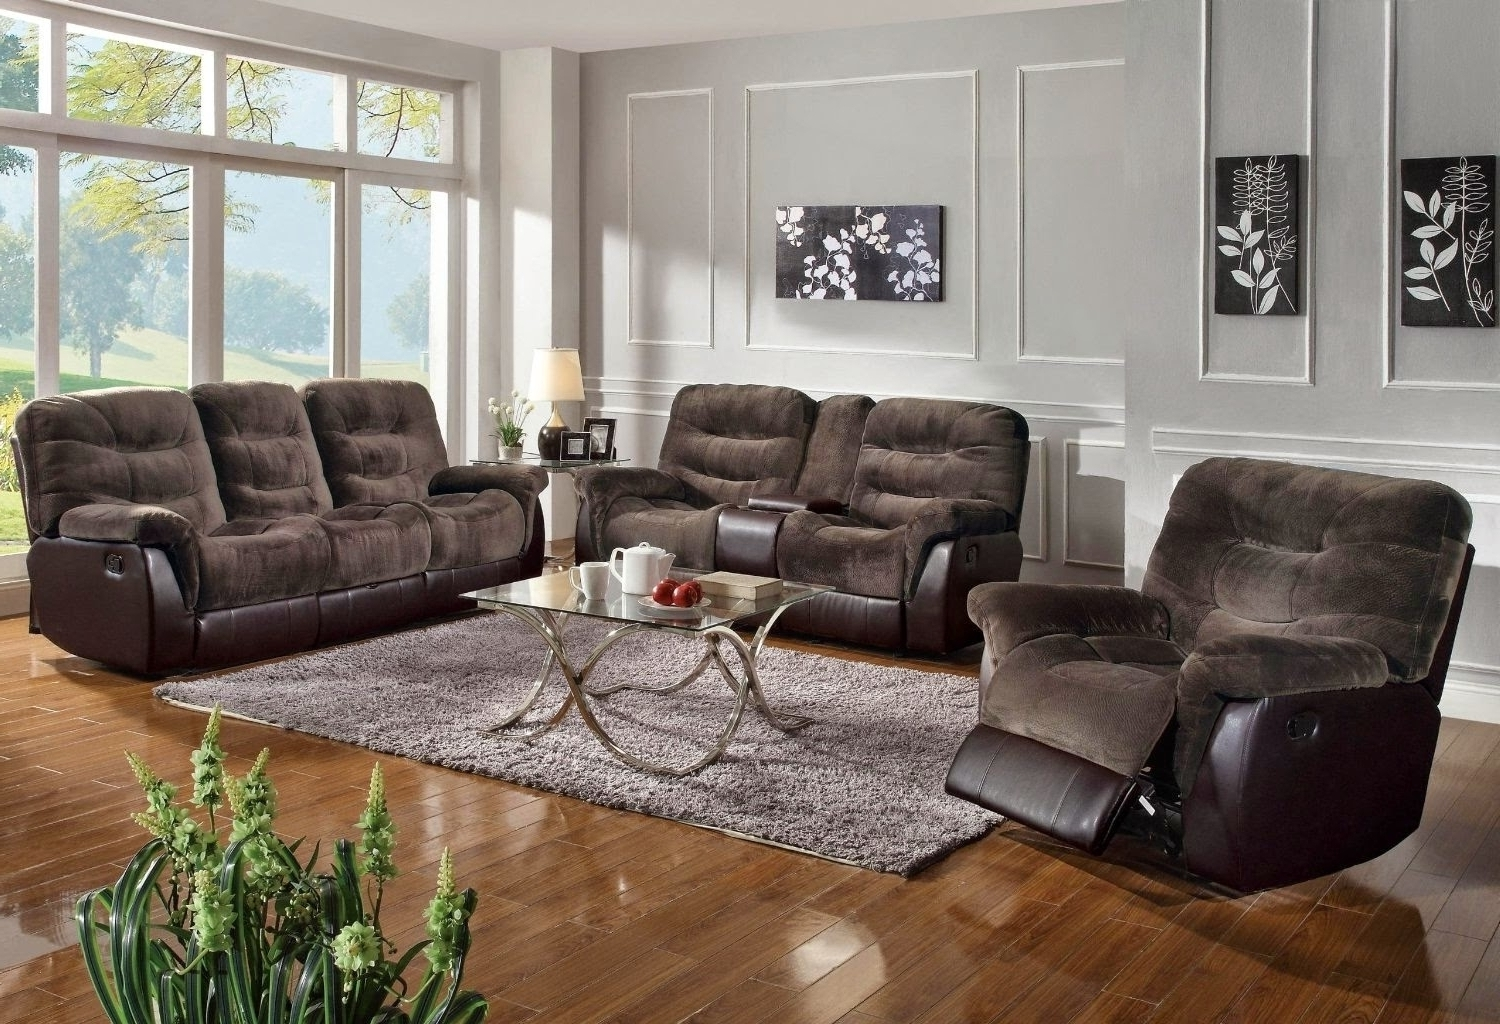 Most Recent Furniture Reclining Sectional Sofas For Small Spaces Reclining Within Small Sectional Sofas For Small Spaces (View 4 of 20)